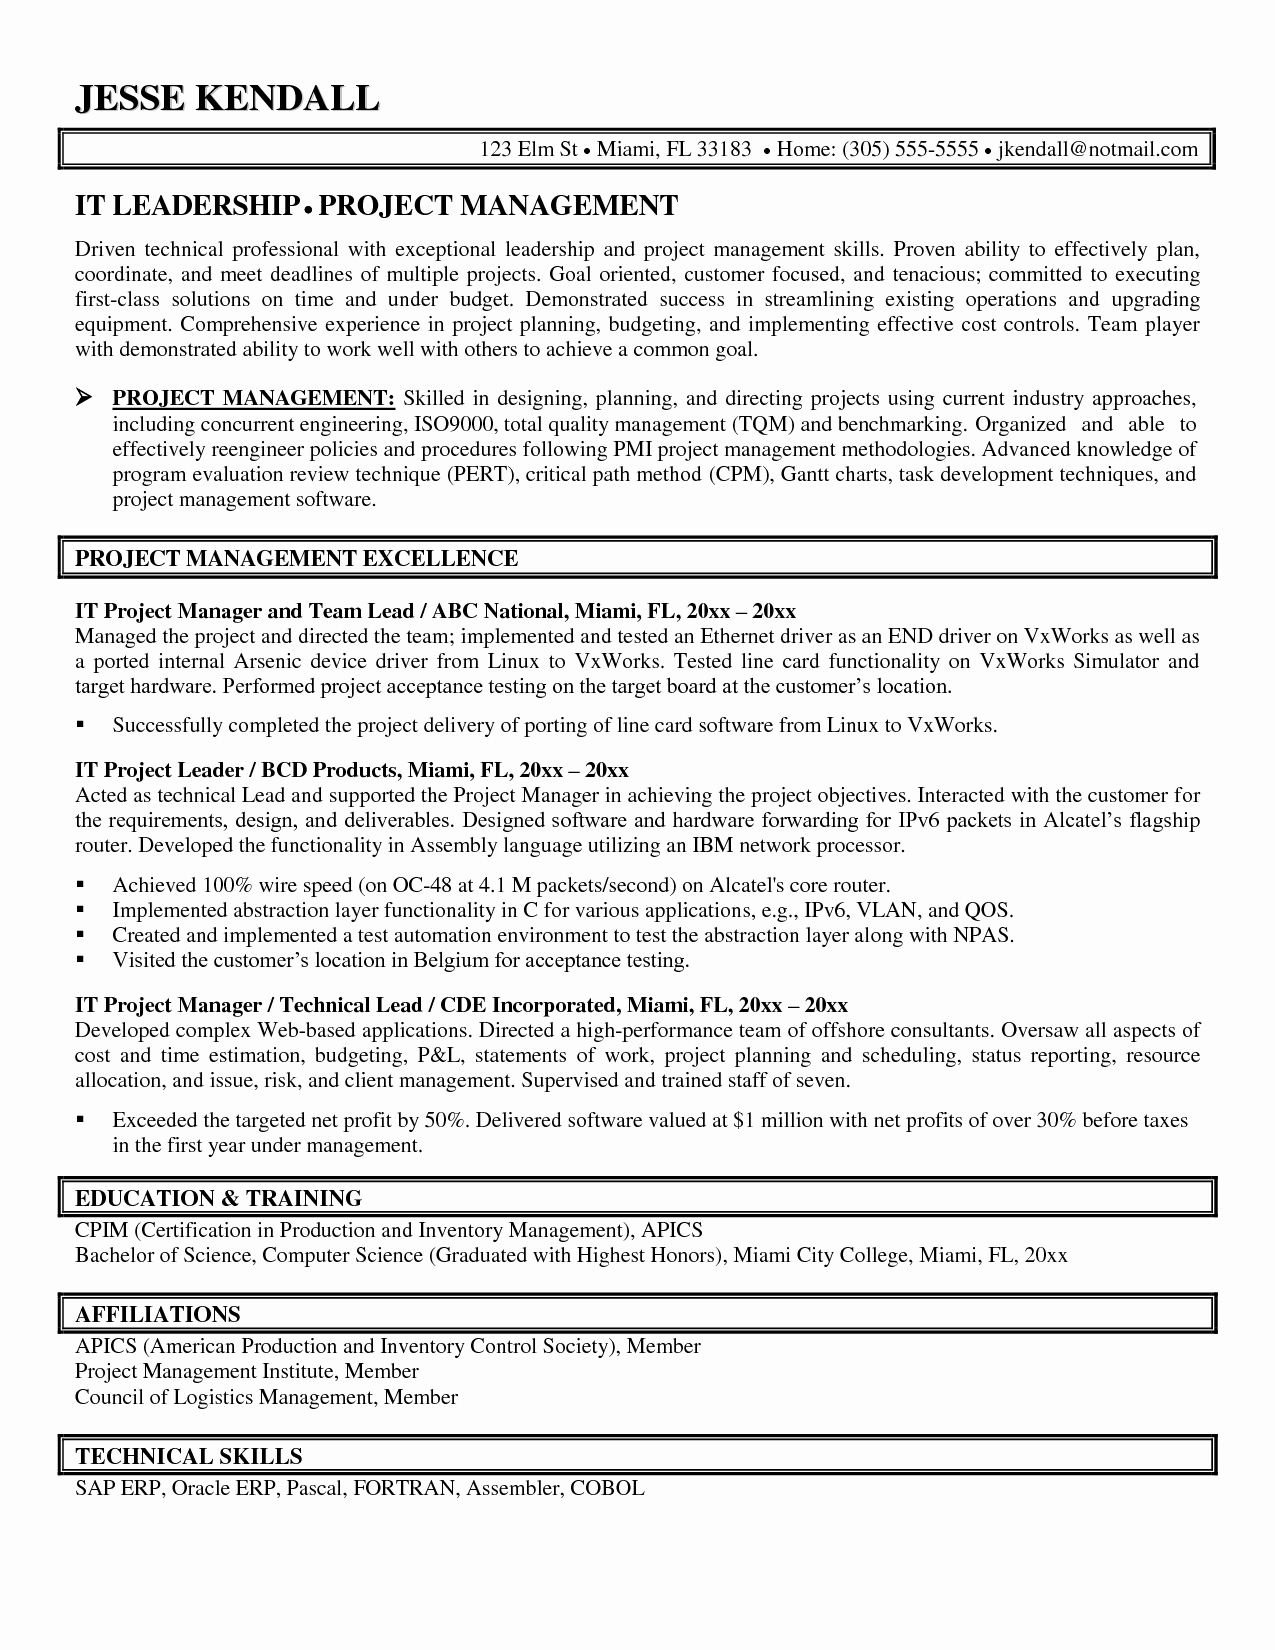 013 Leadership Goals And Objectives Examples The Best Of Shoes Writing An Informative Essay About Making Sacrifices Quizlet Awesome Sample Resume Forhnicalad Prewriting Activity Example Breathtaking Lead Exposure Lex Competition Full